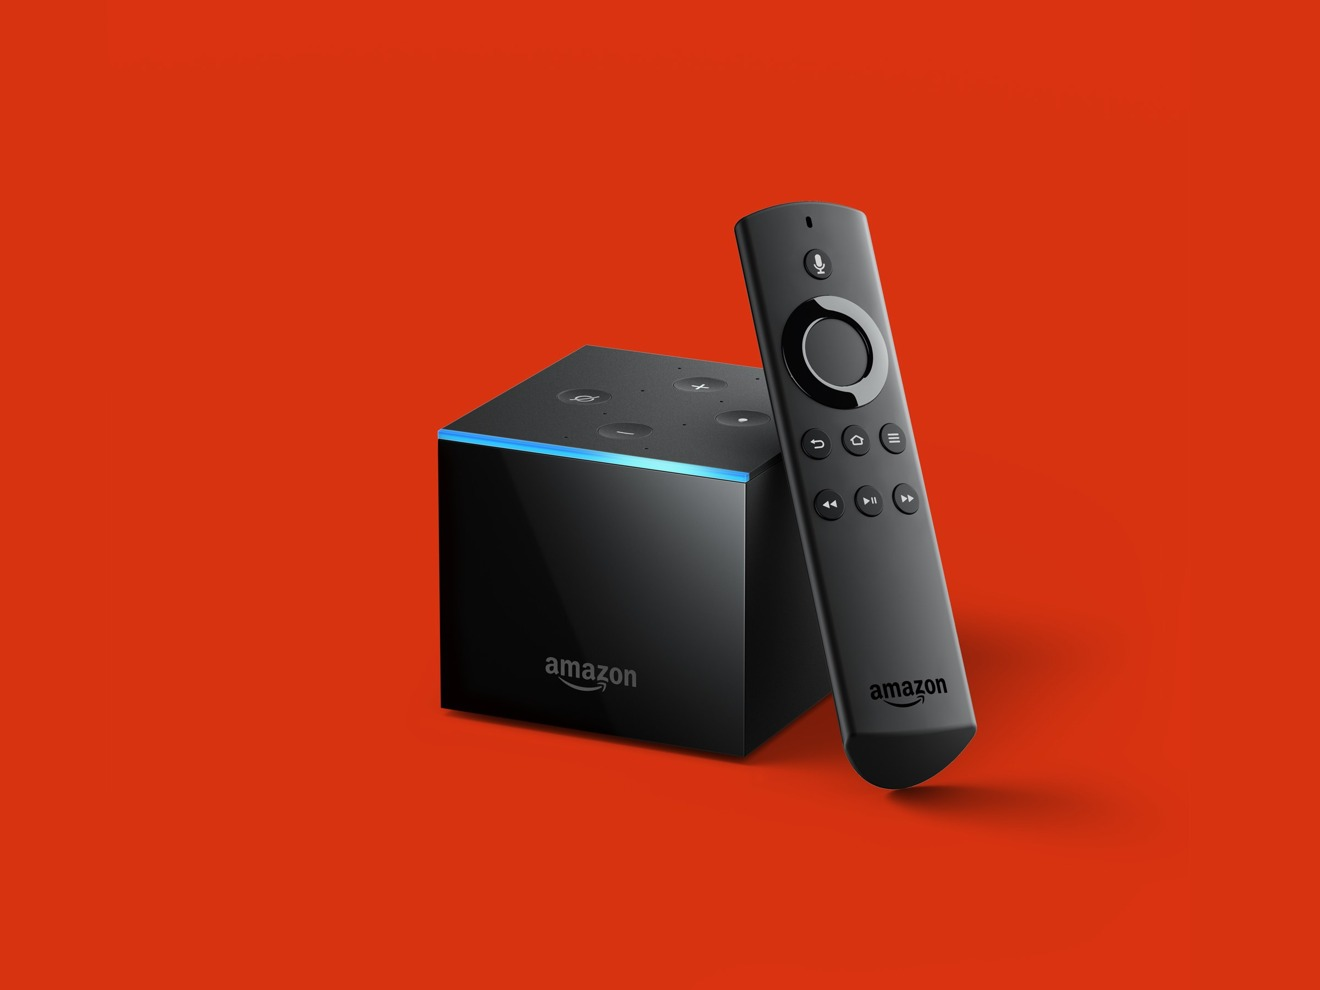 Amazon & Google mend fences, bring YouTube back to Fire TV streamers